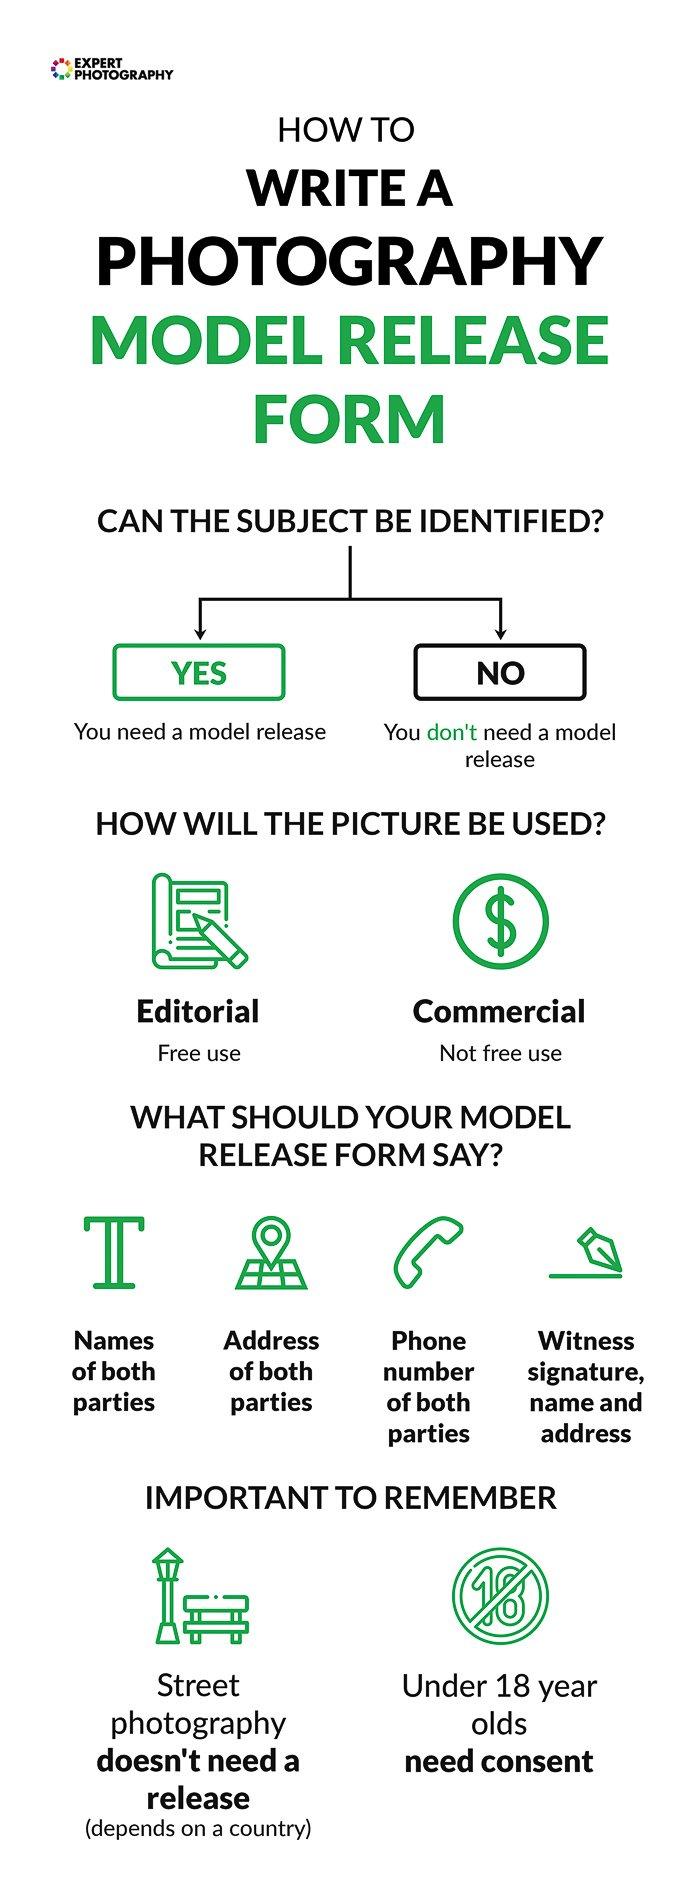 Free photography cheat sheets for writing a model release form